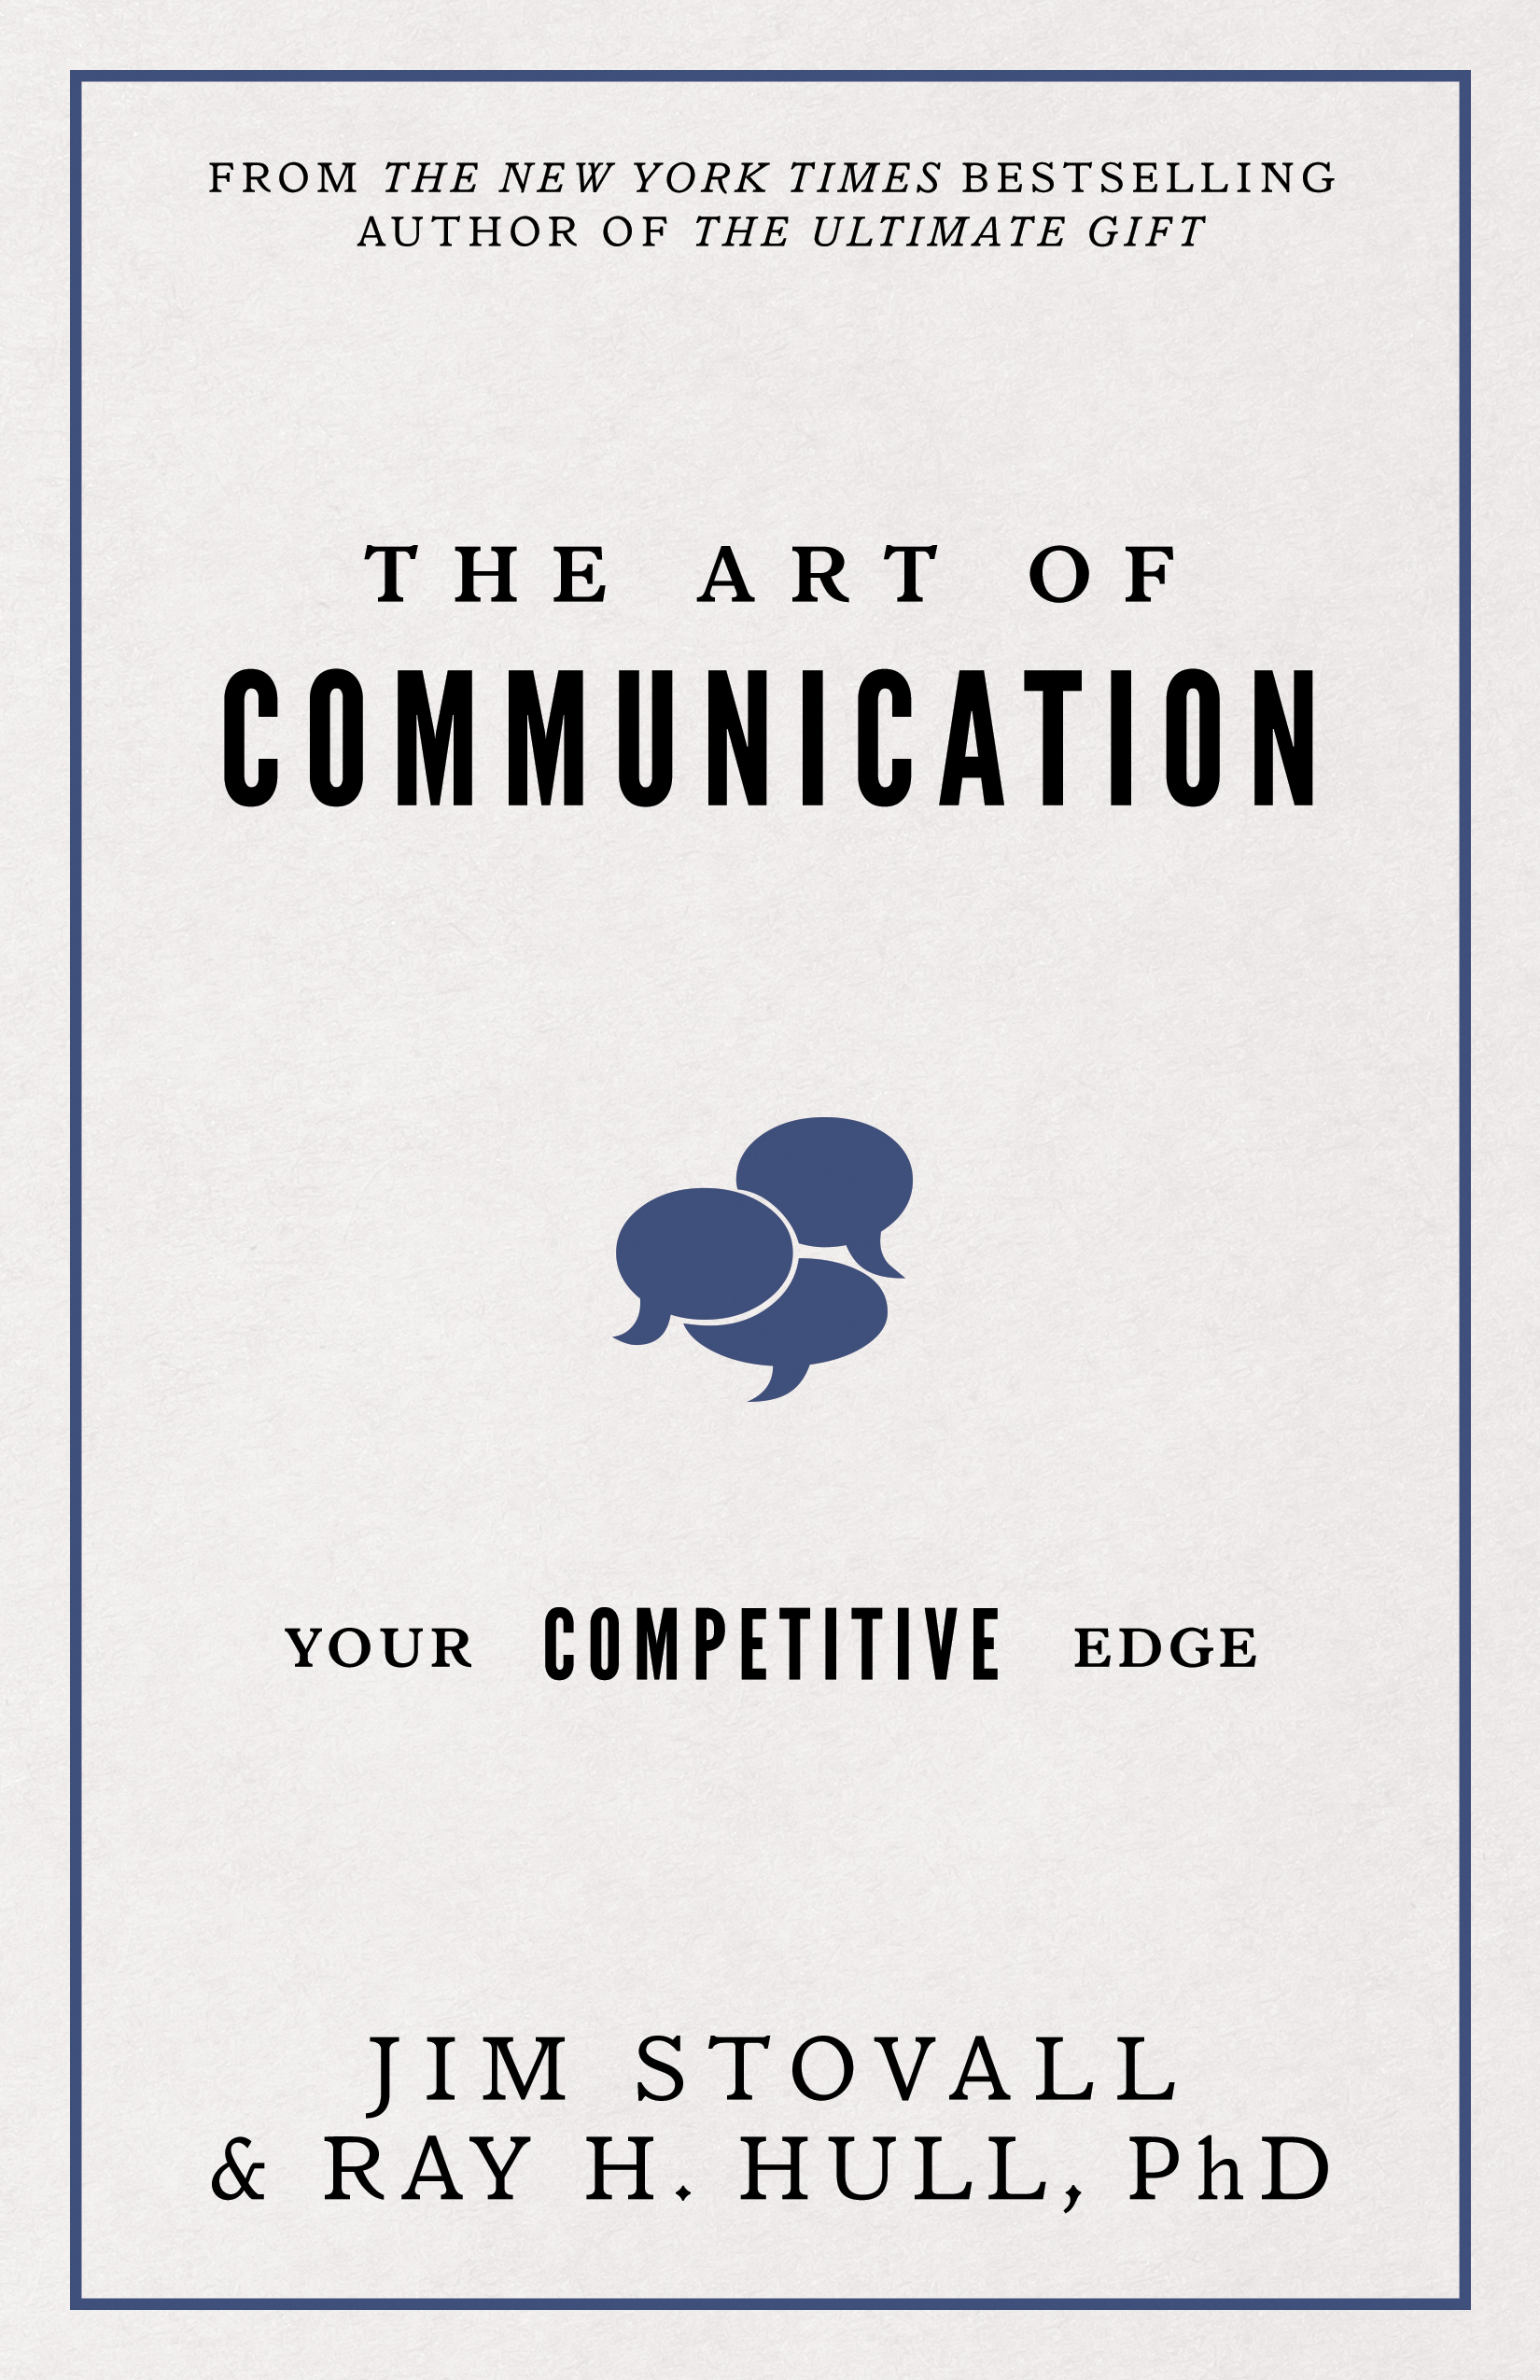 The Art of Communication - By jim stovall & ray h. hull, phd